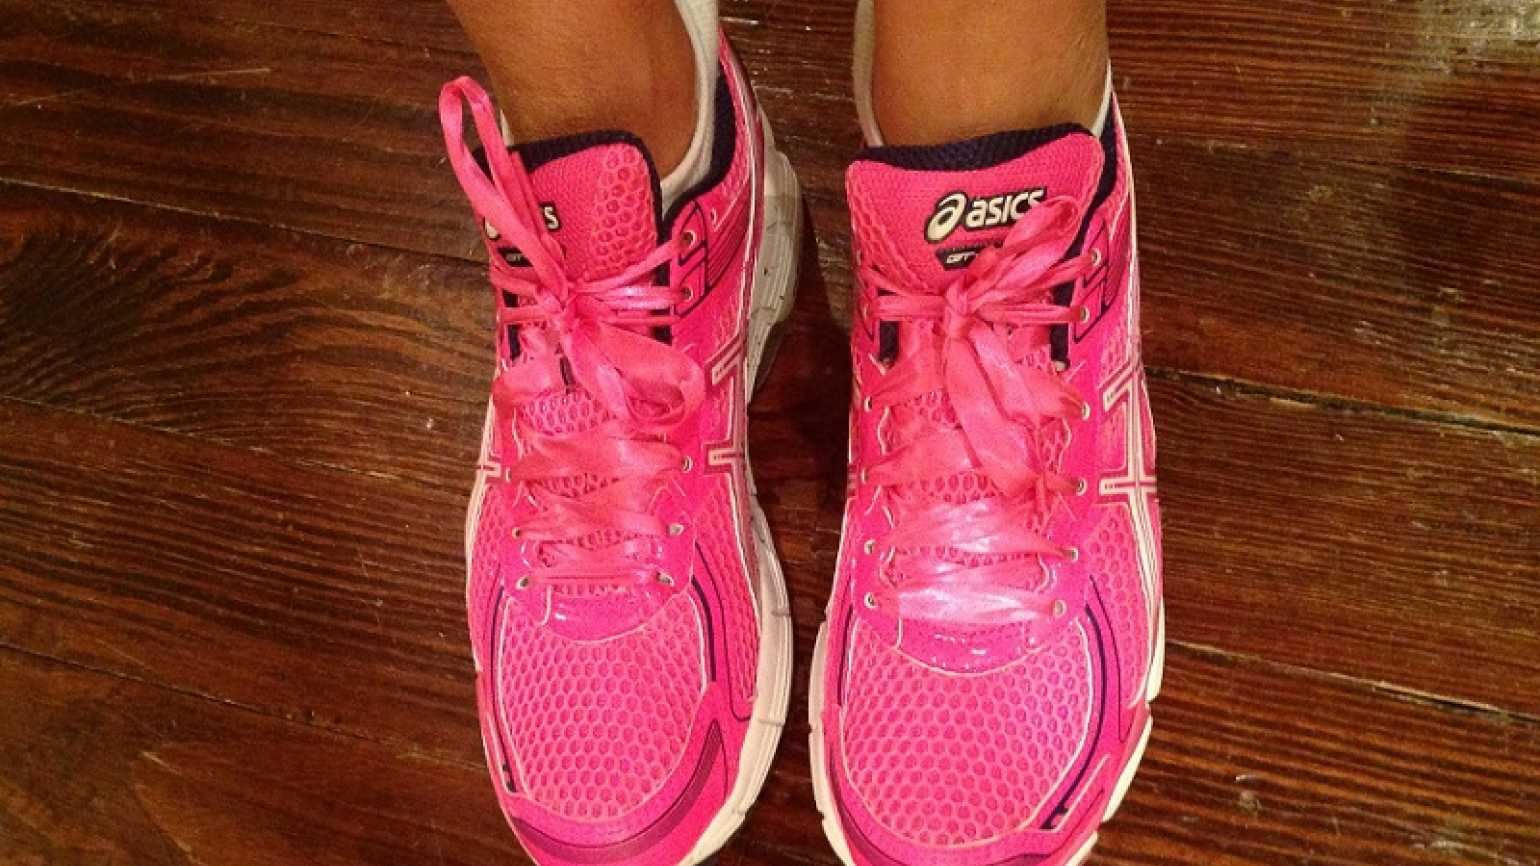 Michelle's bright pink work-out shoes